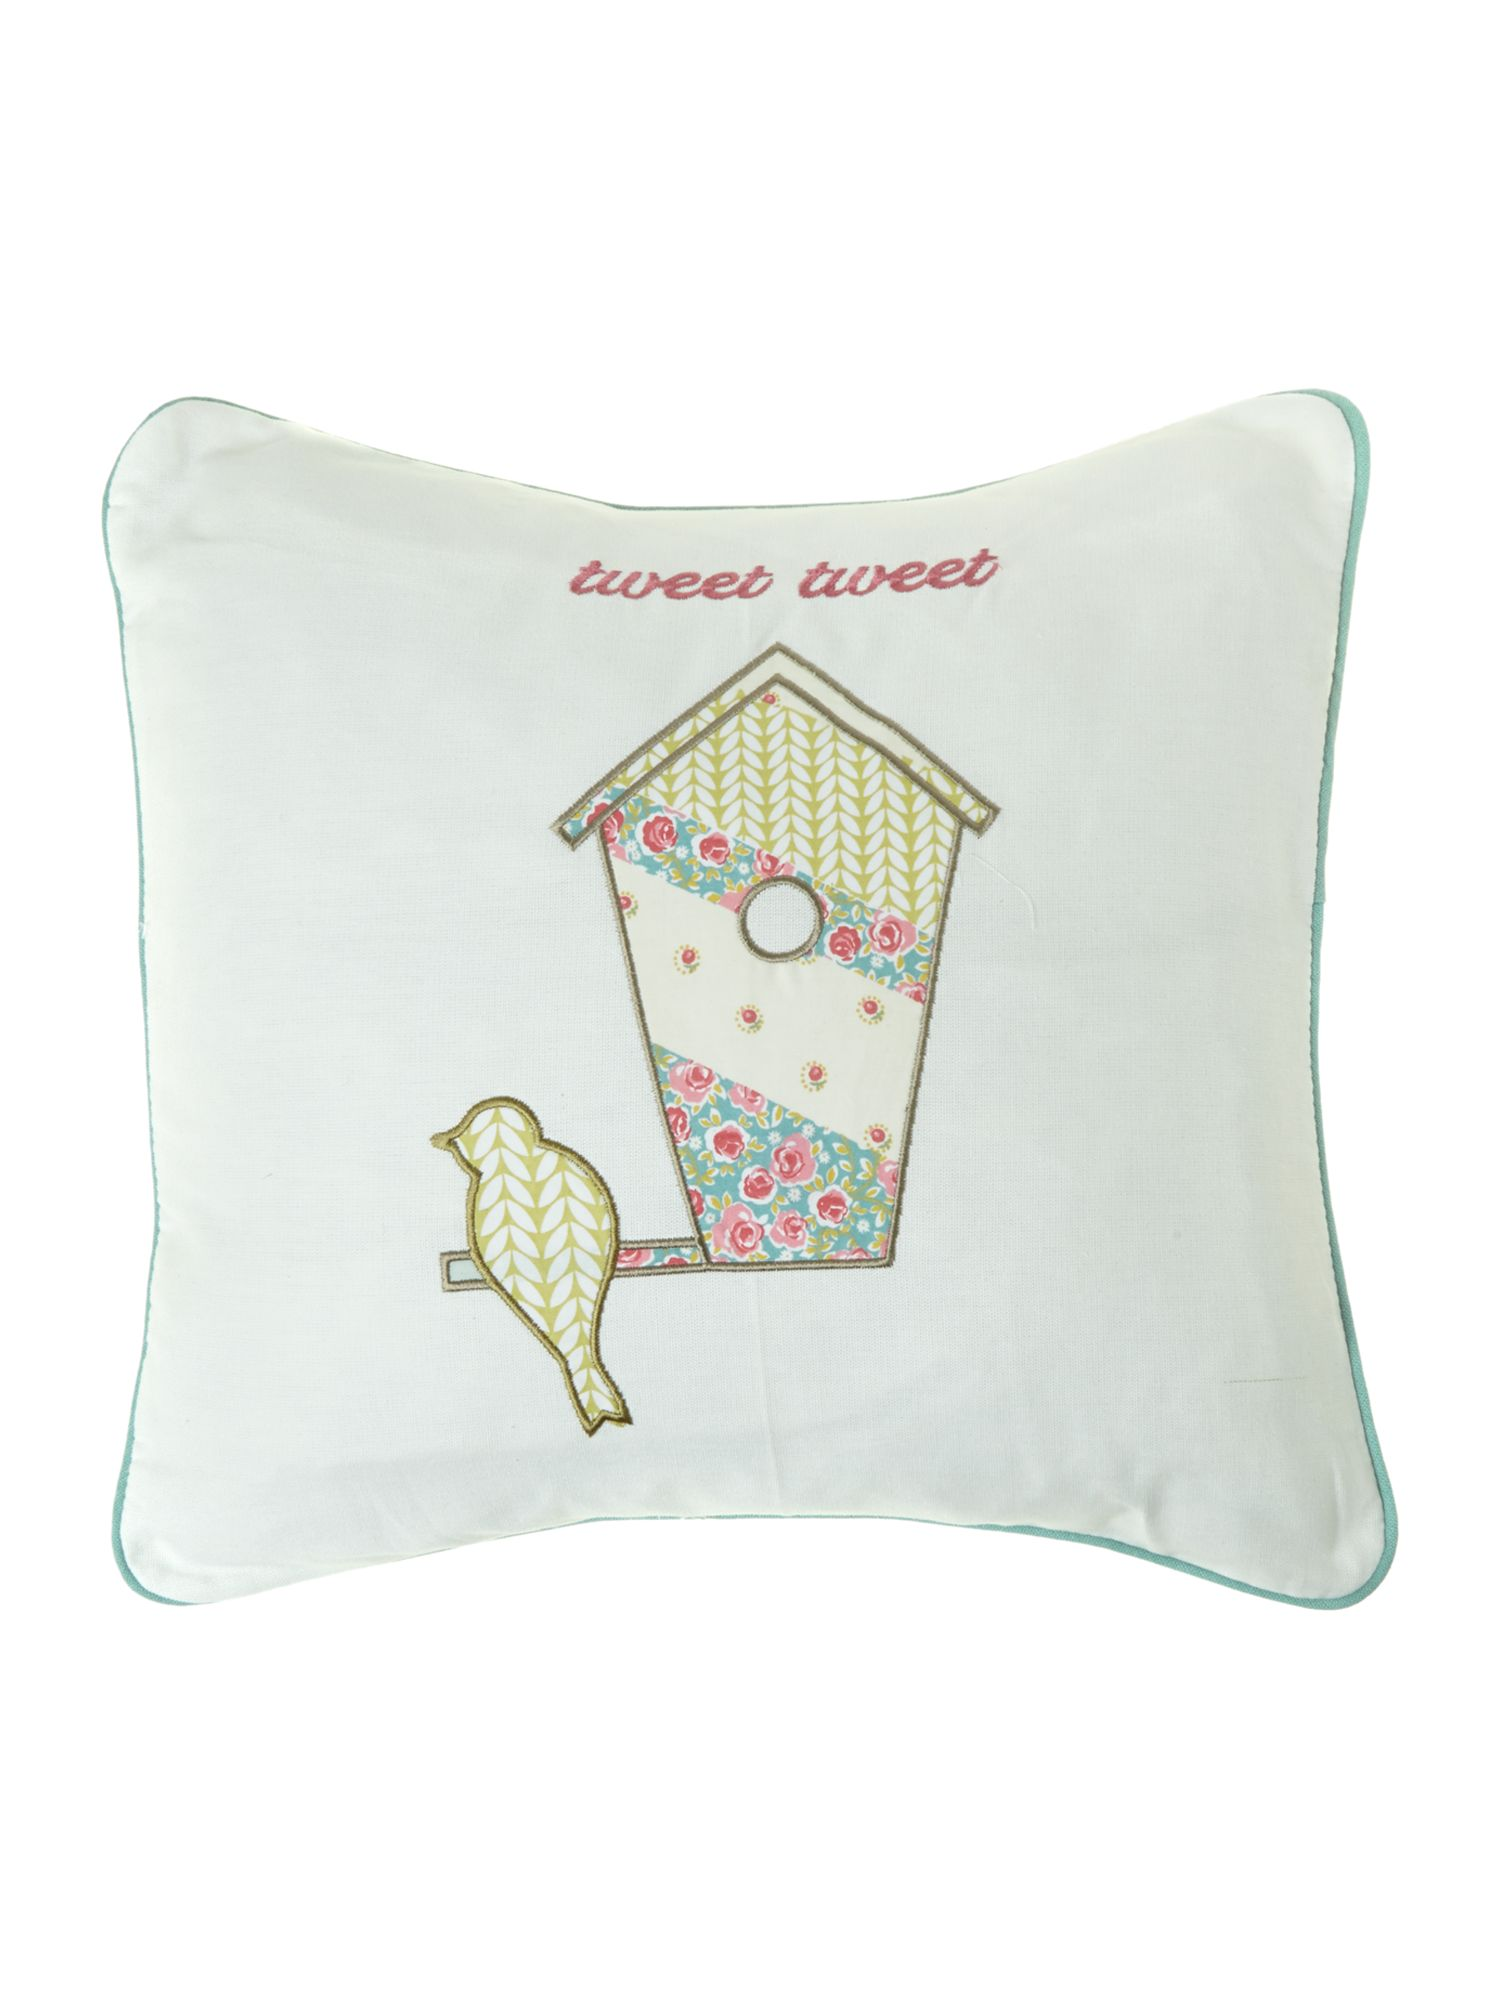 Tweet Duckegg cushion